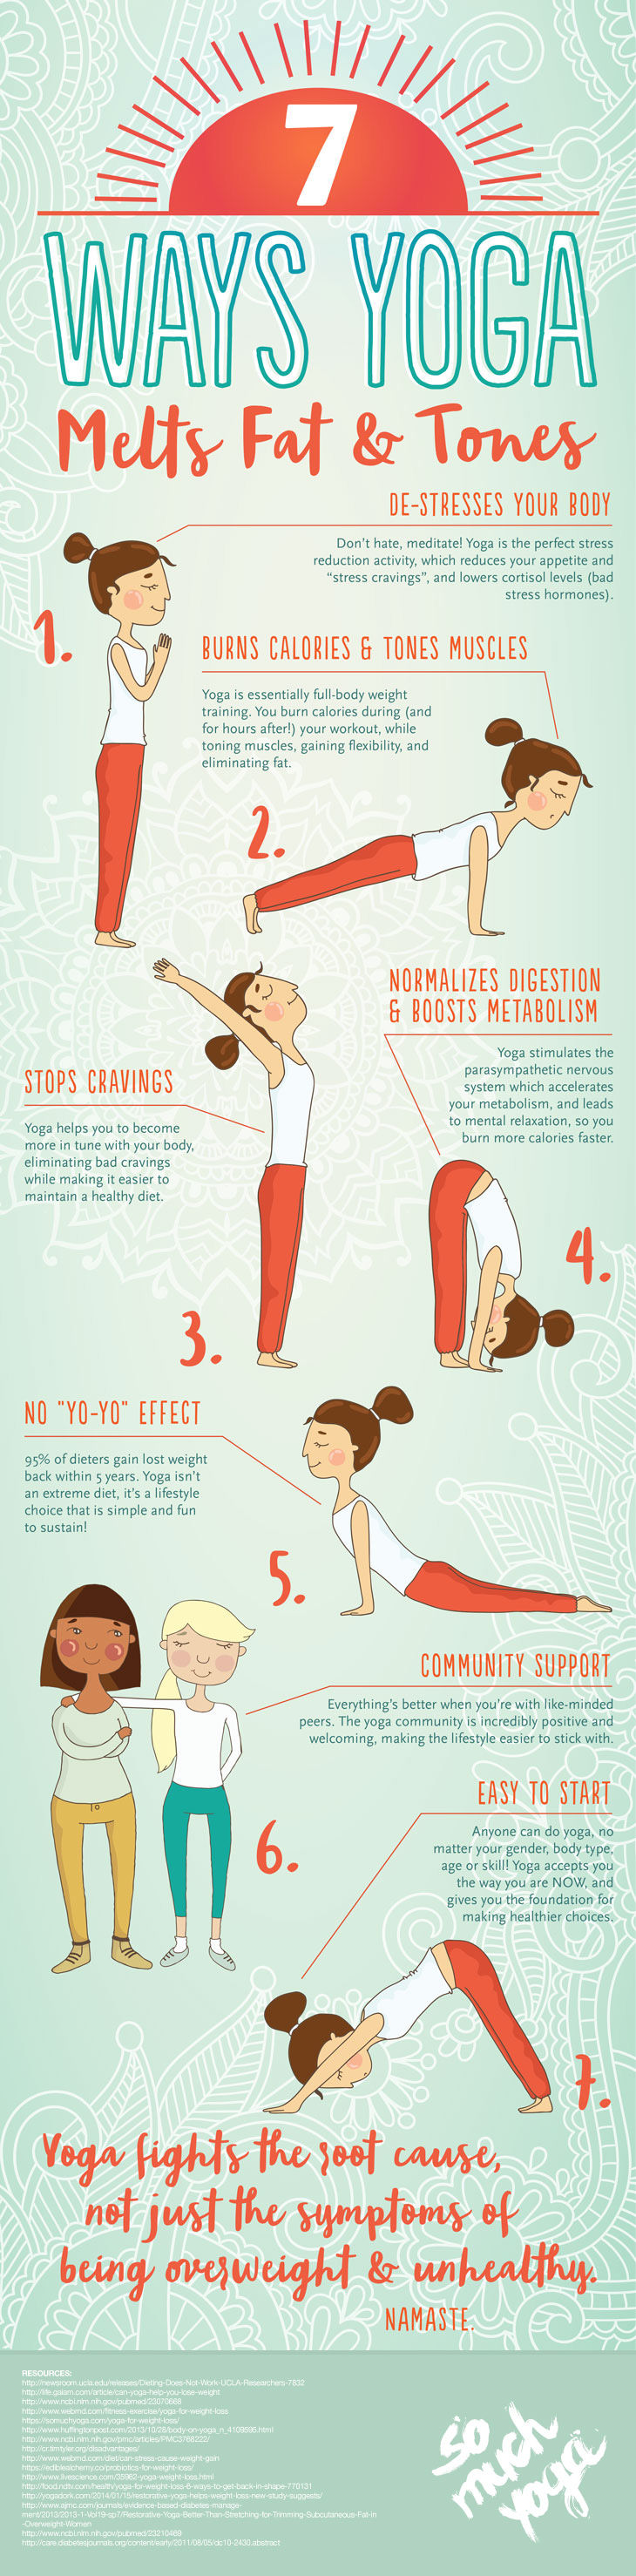 yoga for fat loss Infographic